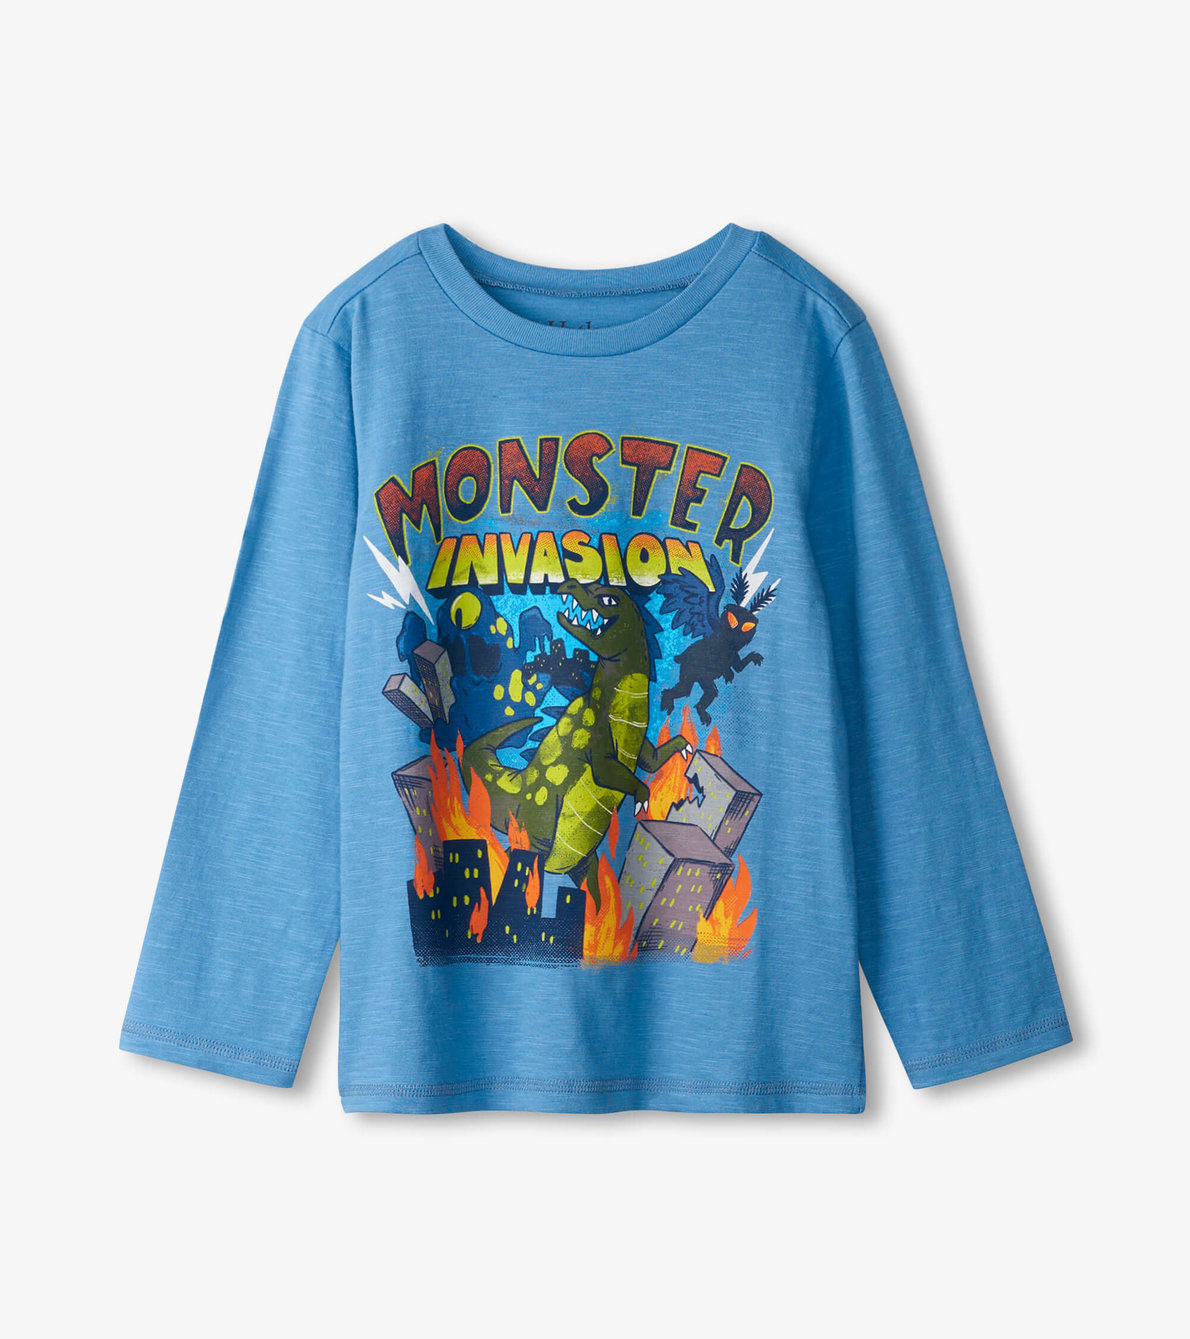 View larger image of Monster Invasion Long Sleeve Tee